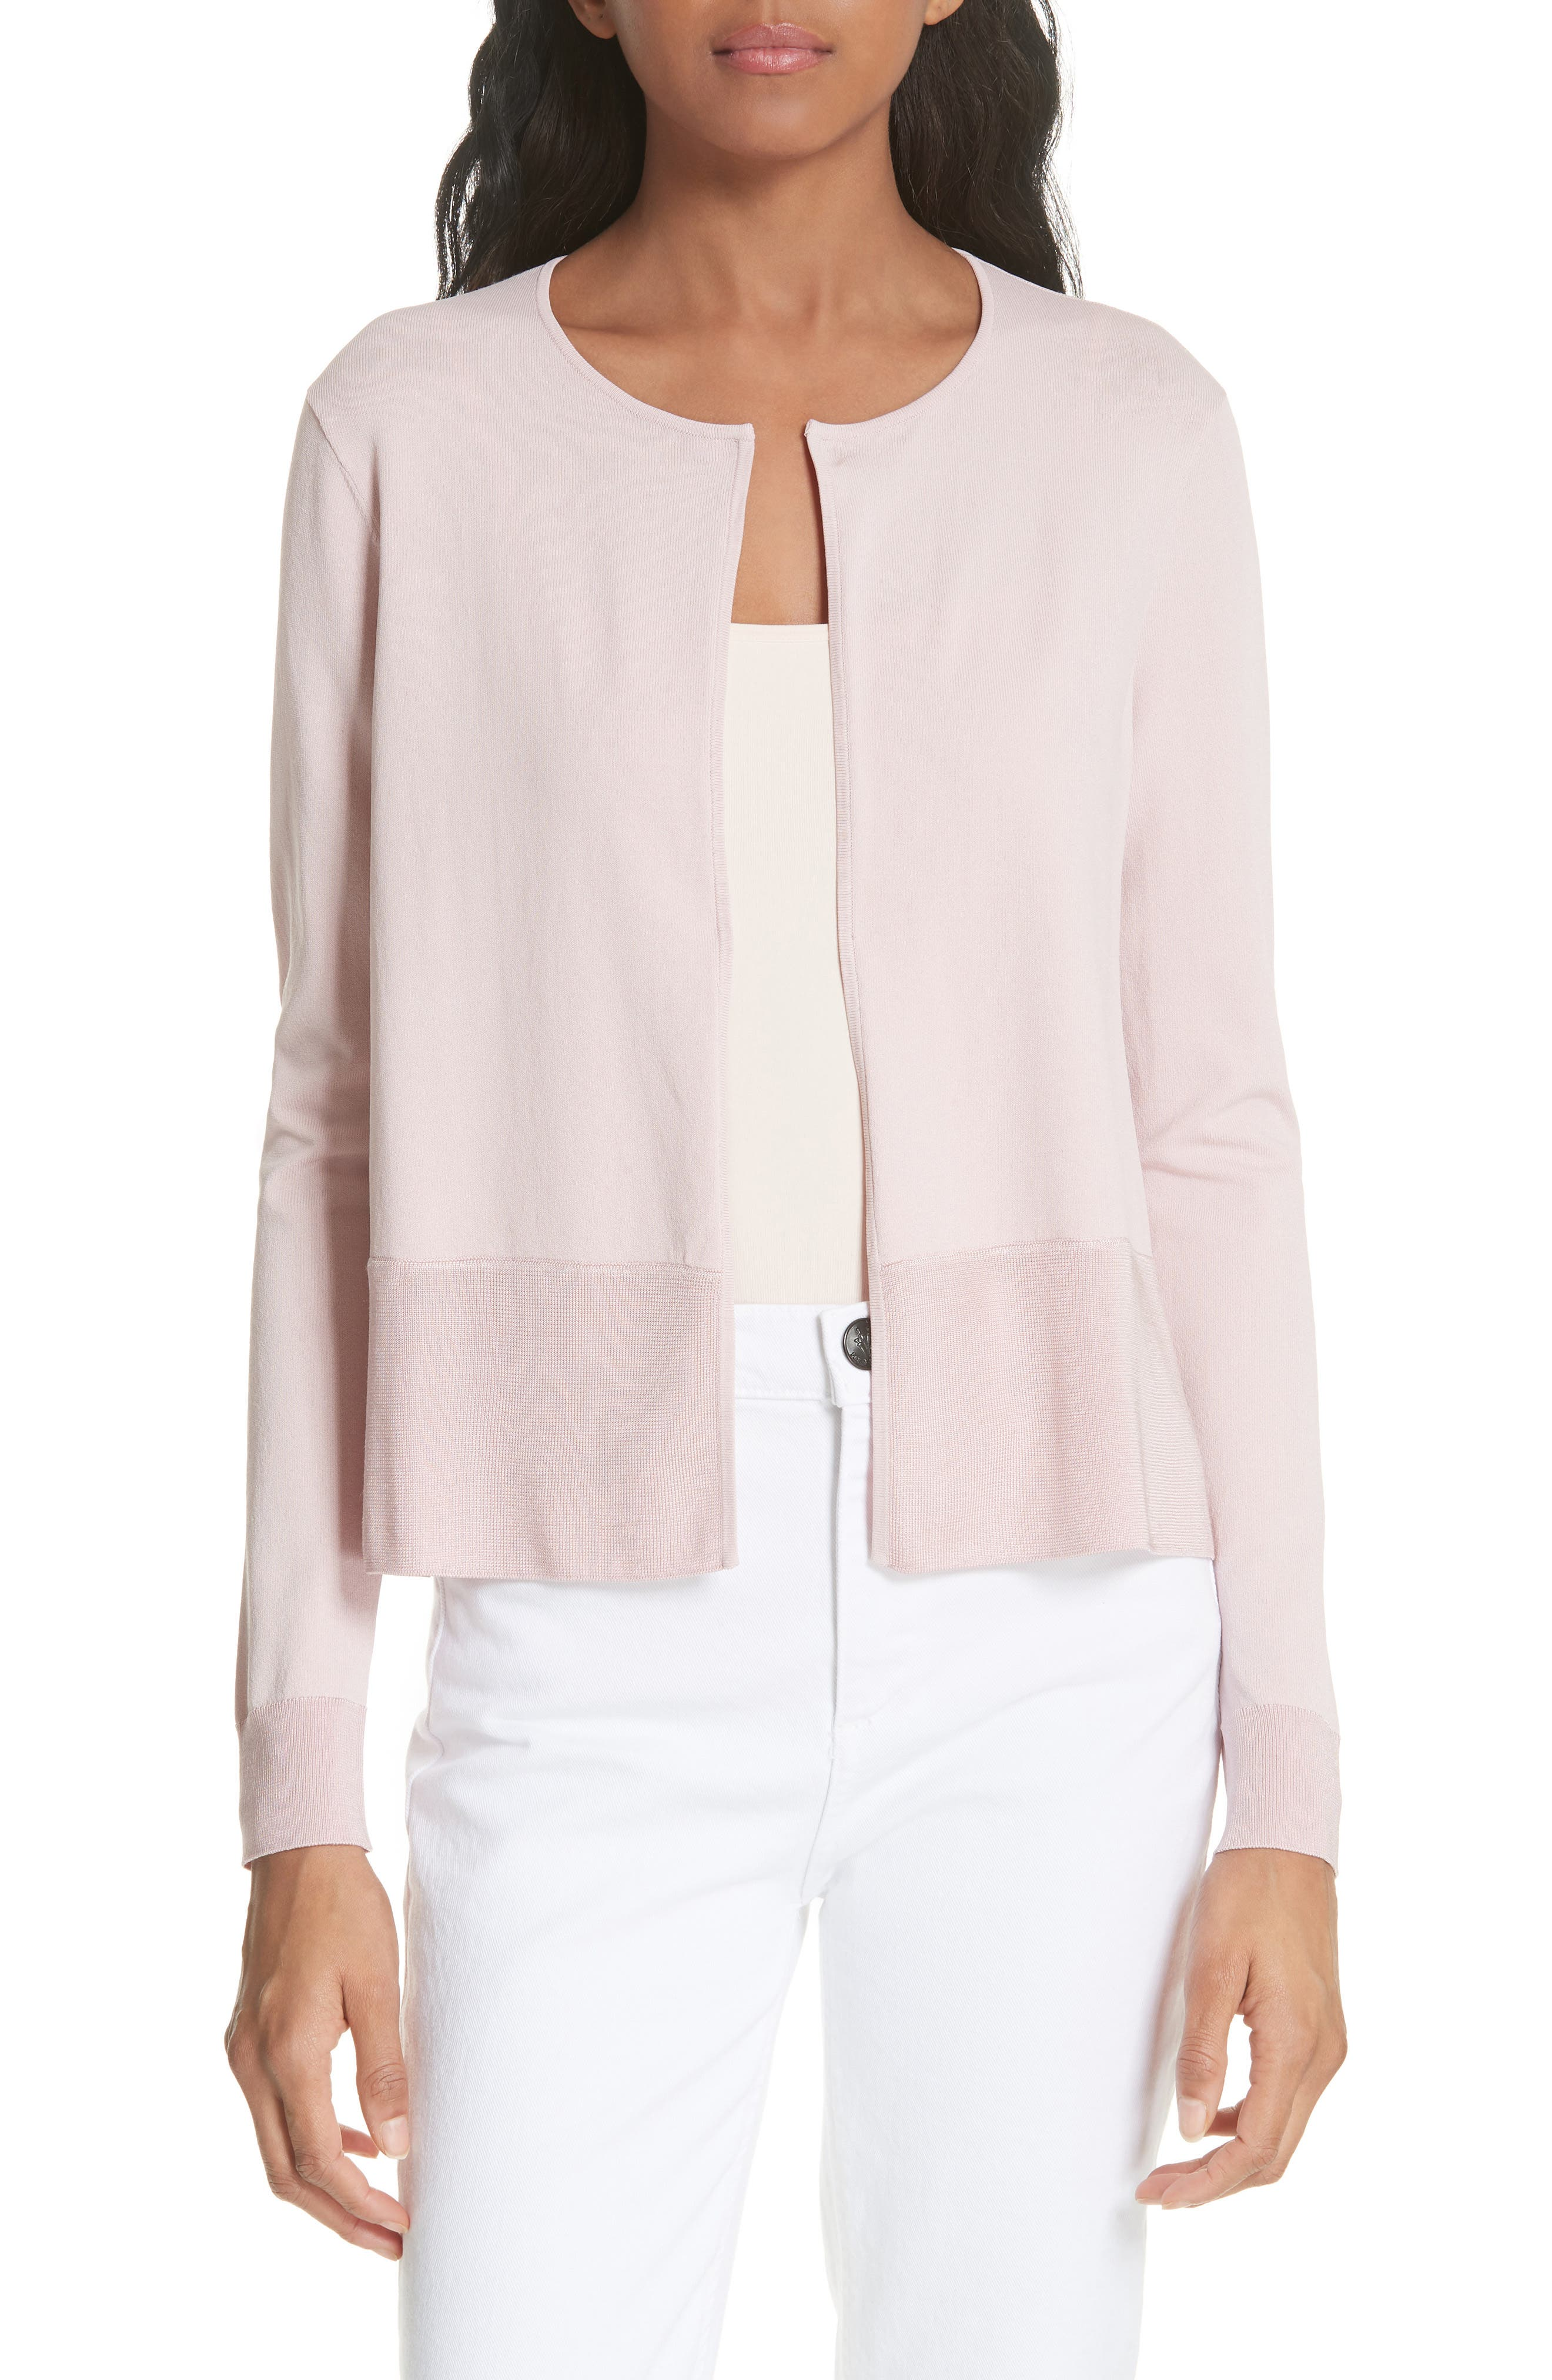 Ted Baker London Jacsum Cardigan